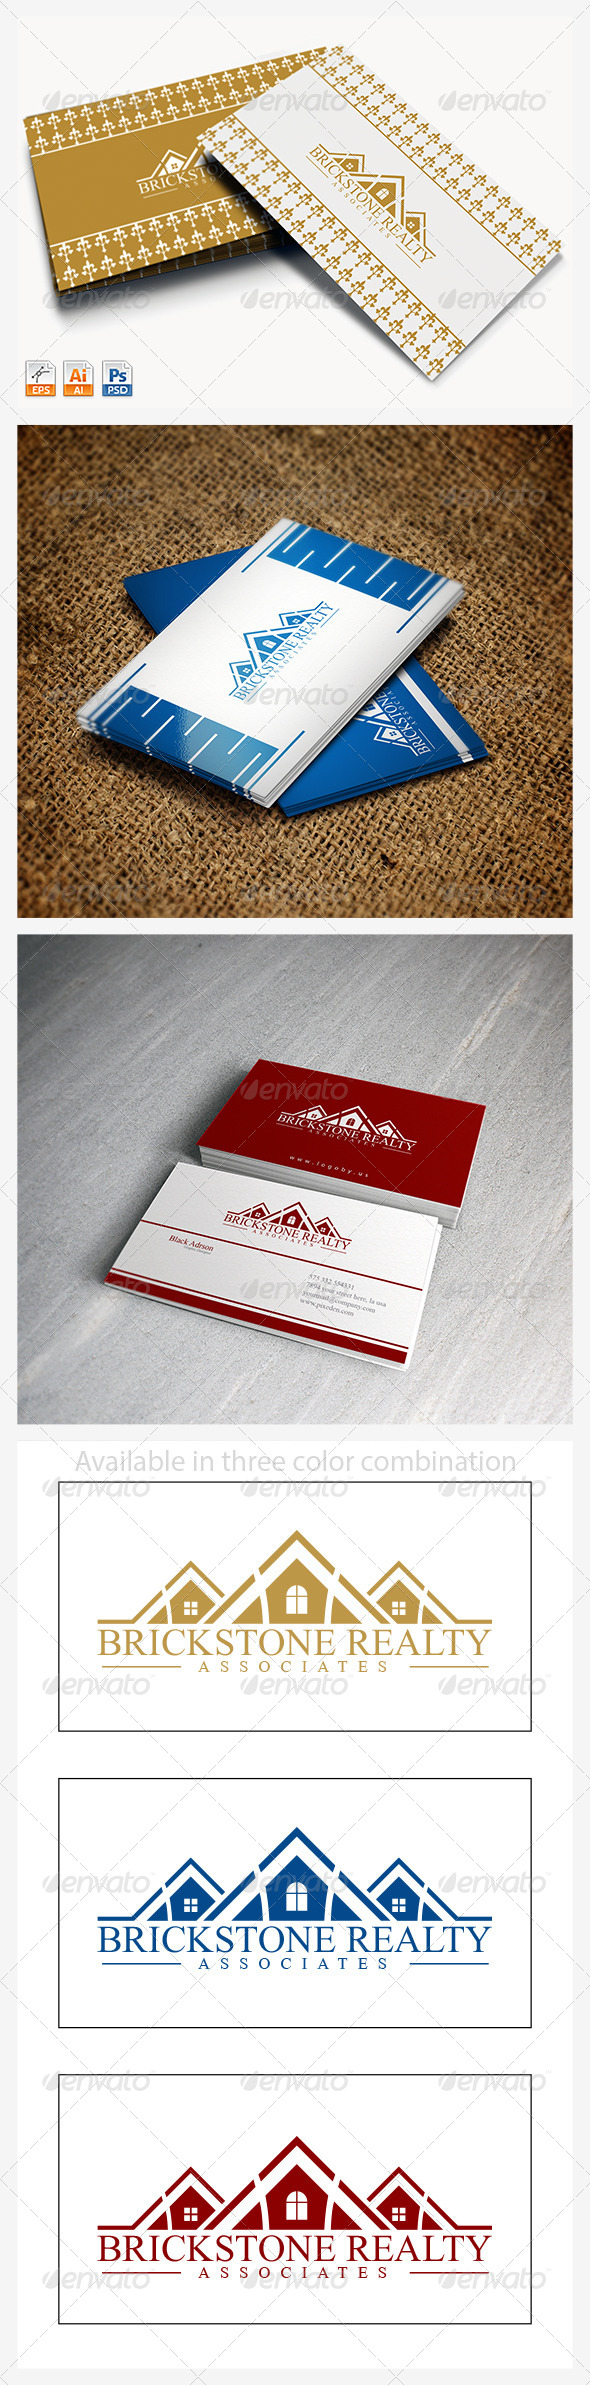 Brick Stone Realty - Buildings Logo Templates